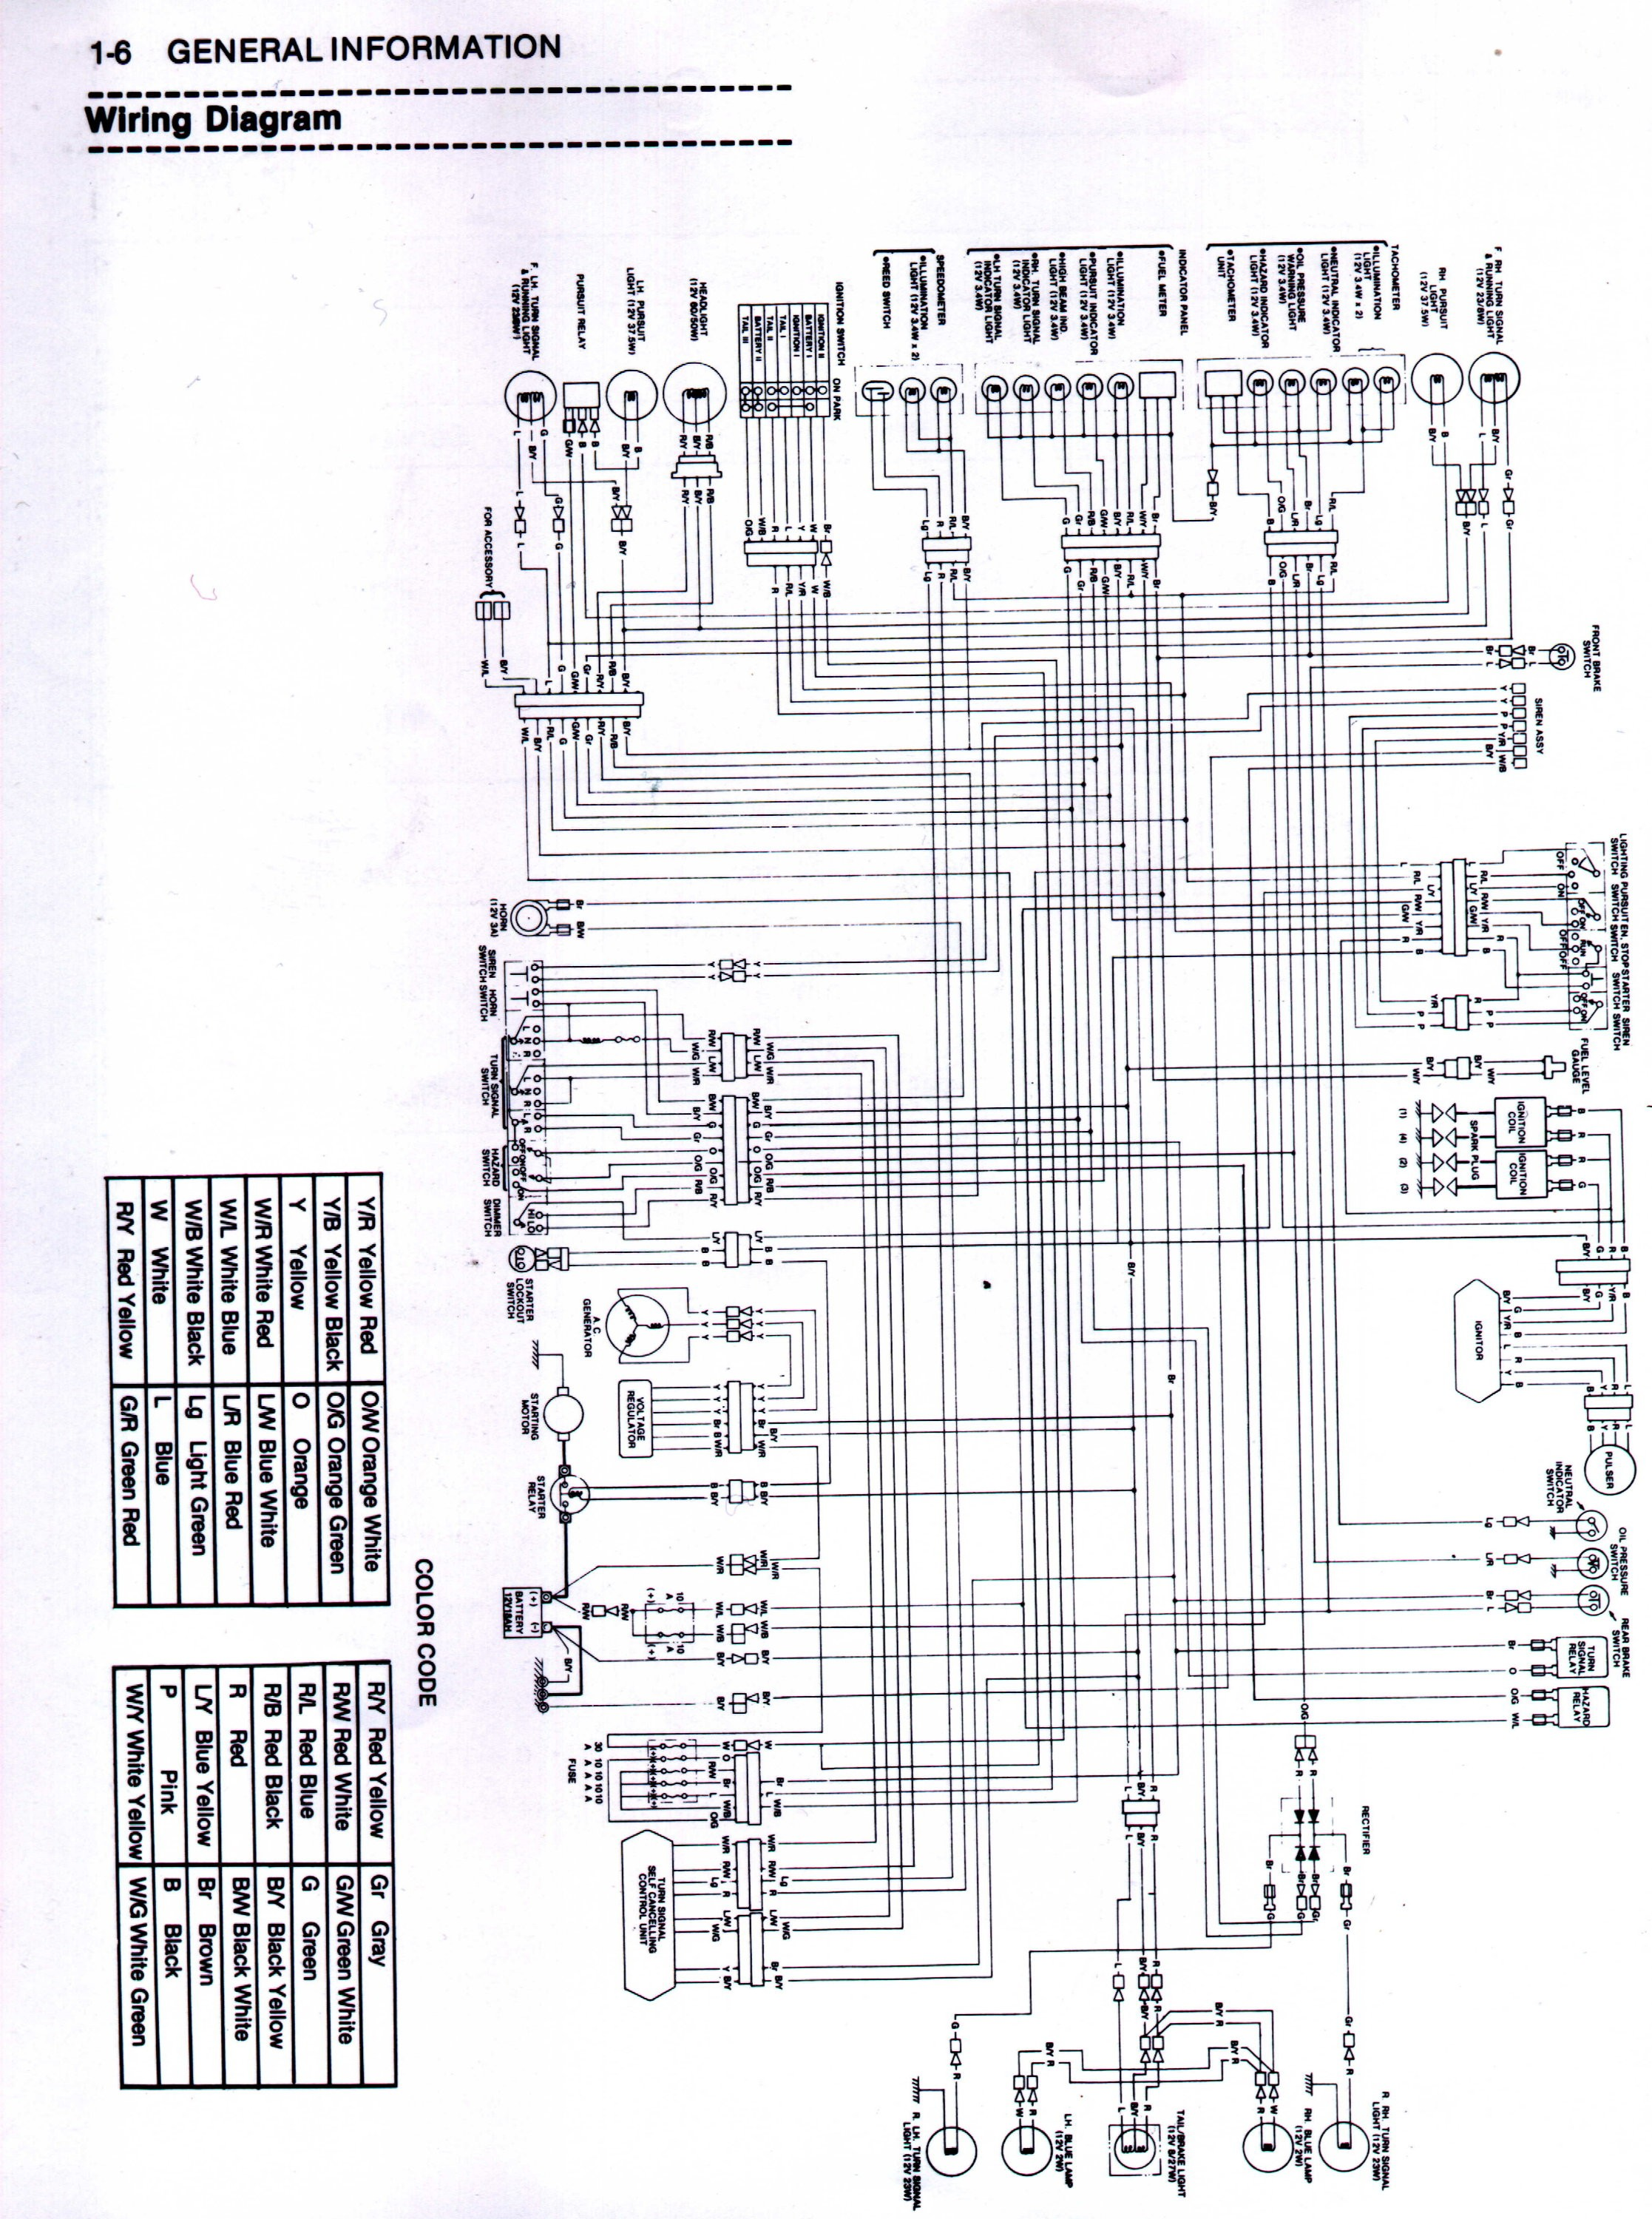 small resolution of 1982 kdx 400 wire diagram wiring library diagram a4 led circuit diagrams 1982 kdx 400 wire